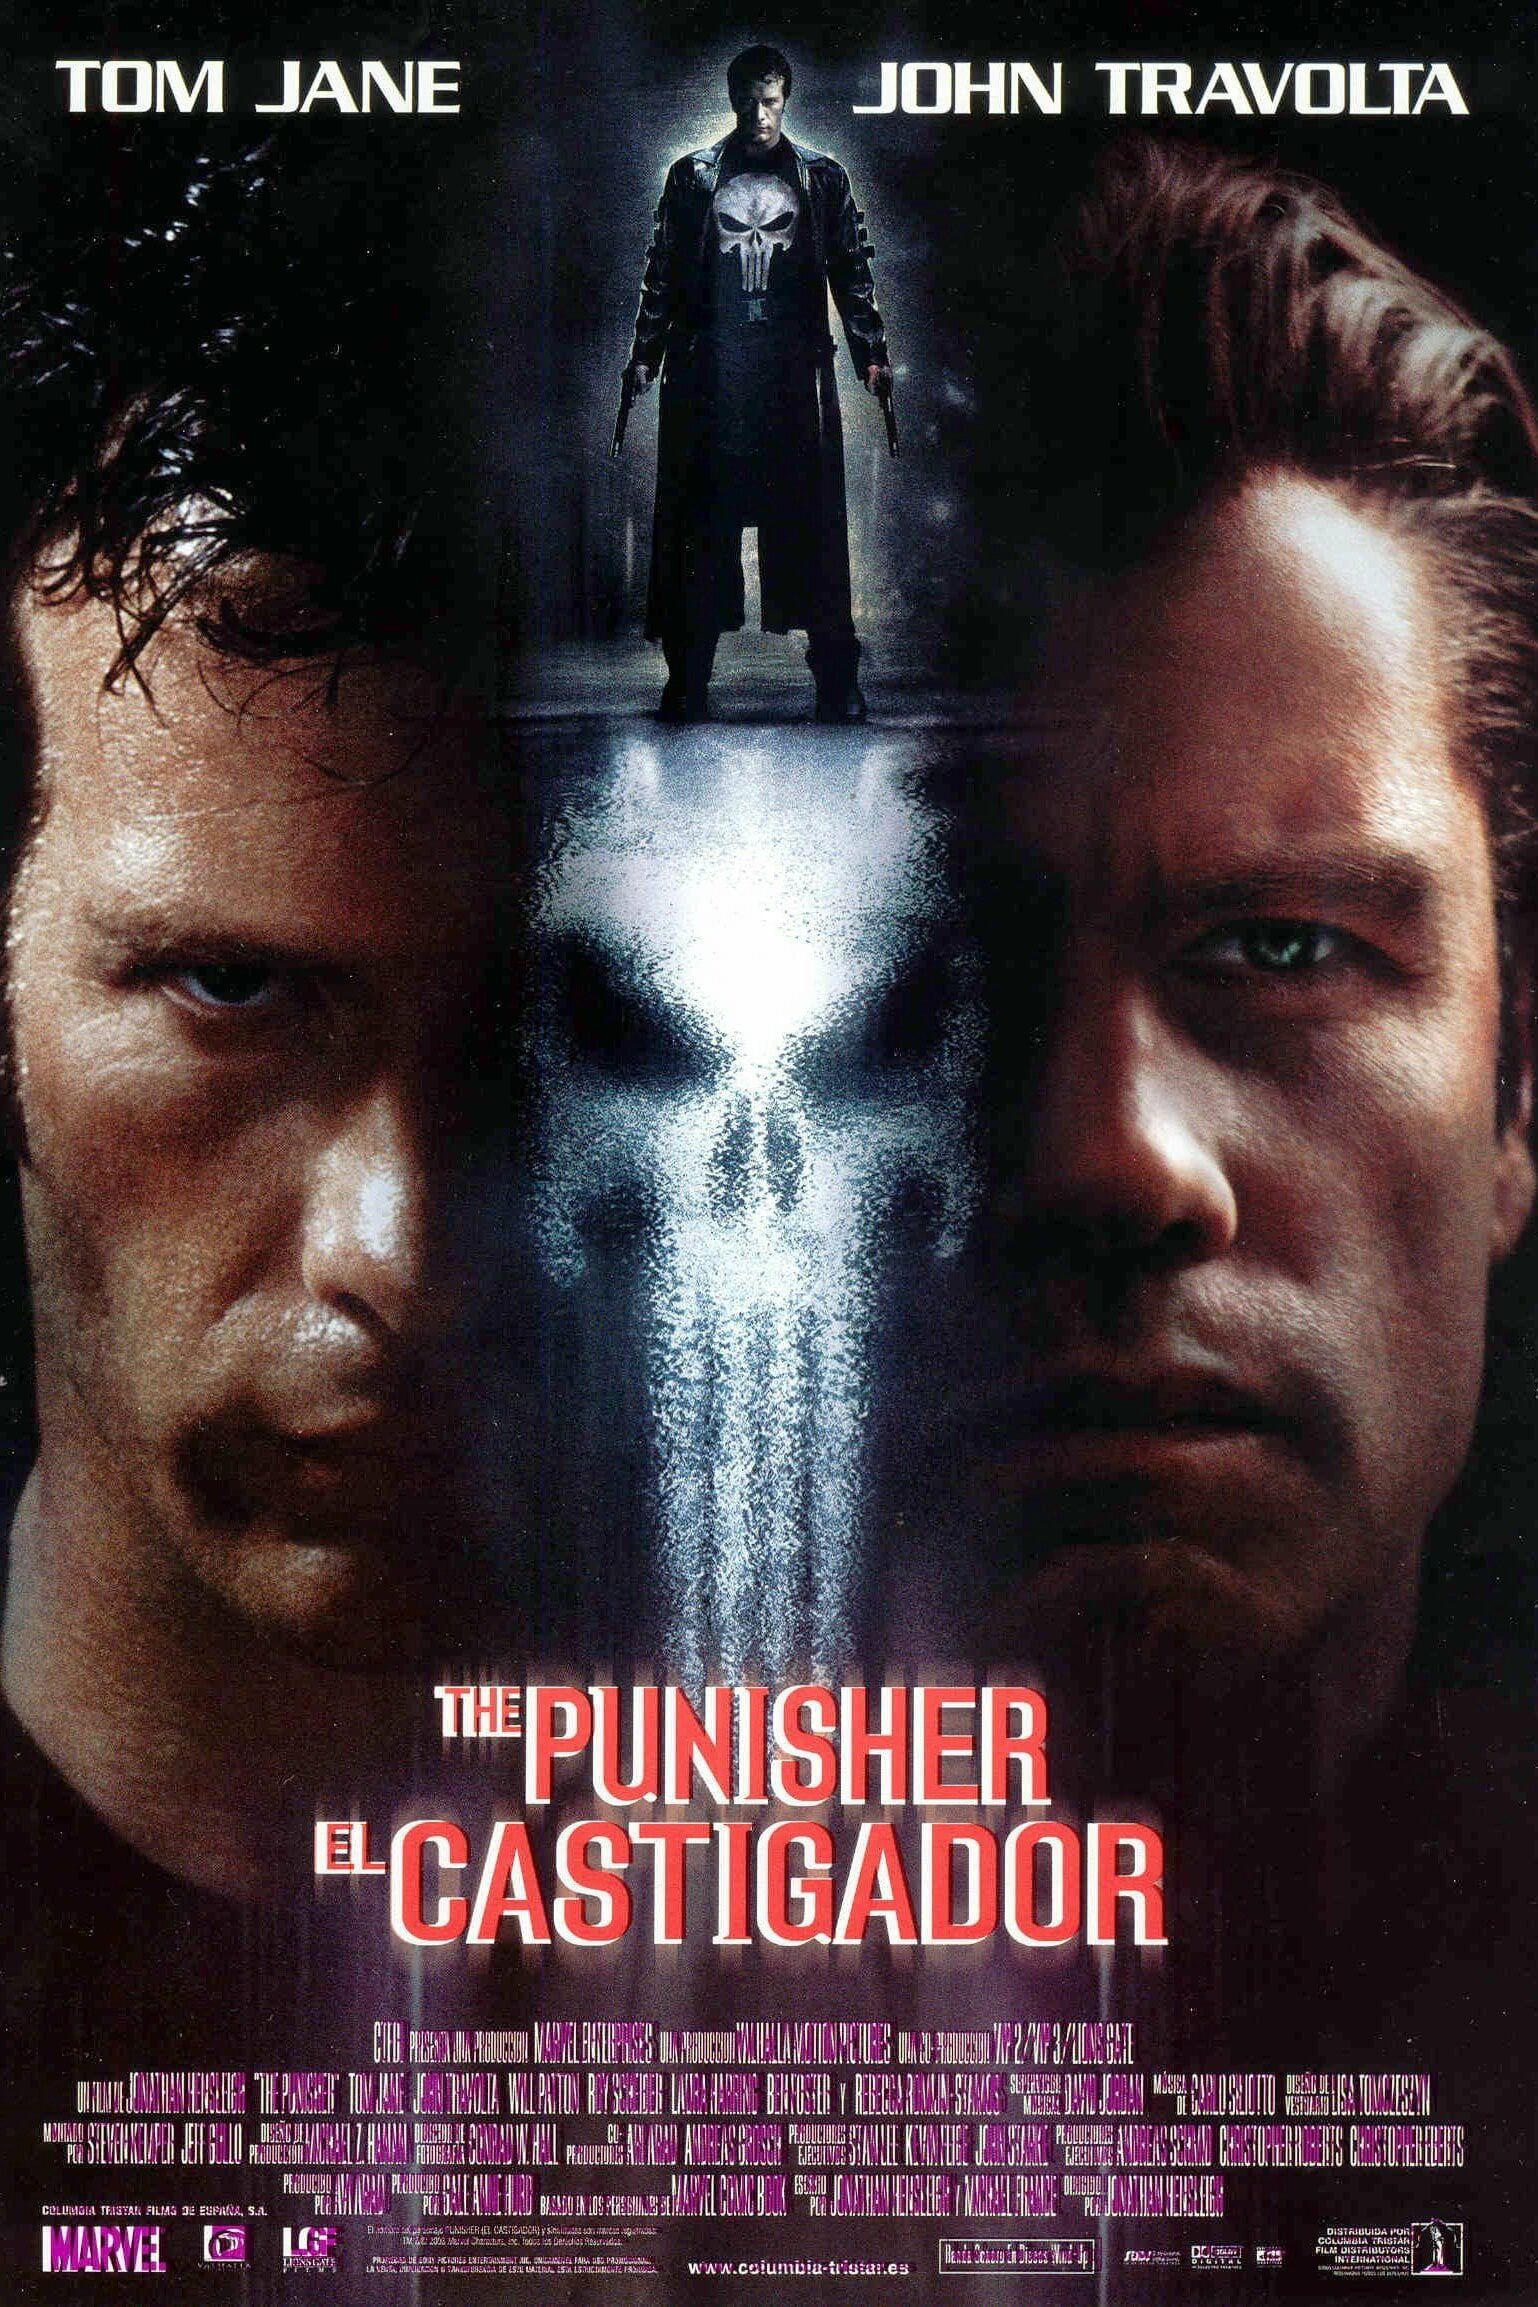 thumb The Punisher (El castigador)